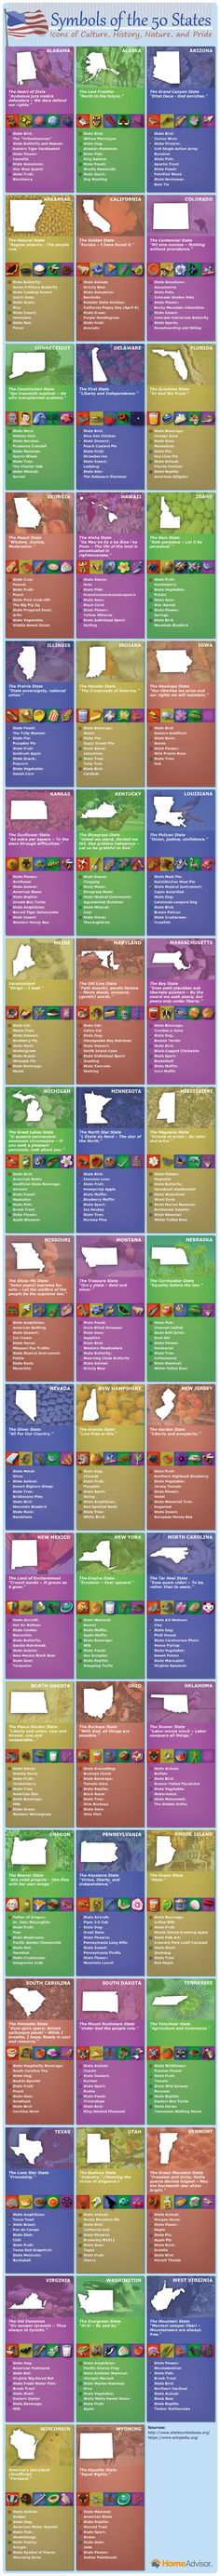 Symbols of the 50 United States Infographic by Cheatography http://www.cheatography.com/cheatography/cheat-sheets/symbols-of-the-50-united-states/ #cheatsheet #usa #states #geography